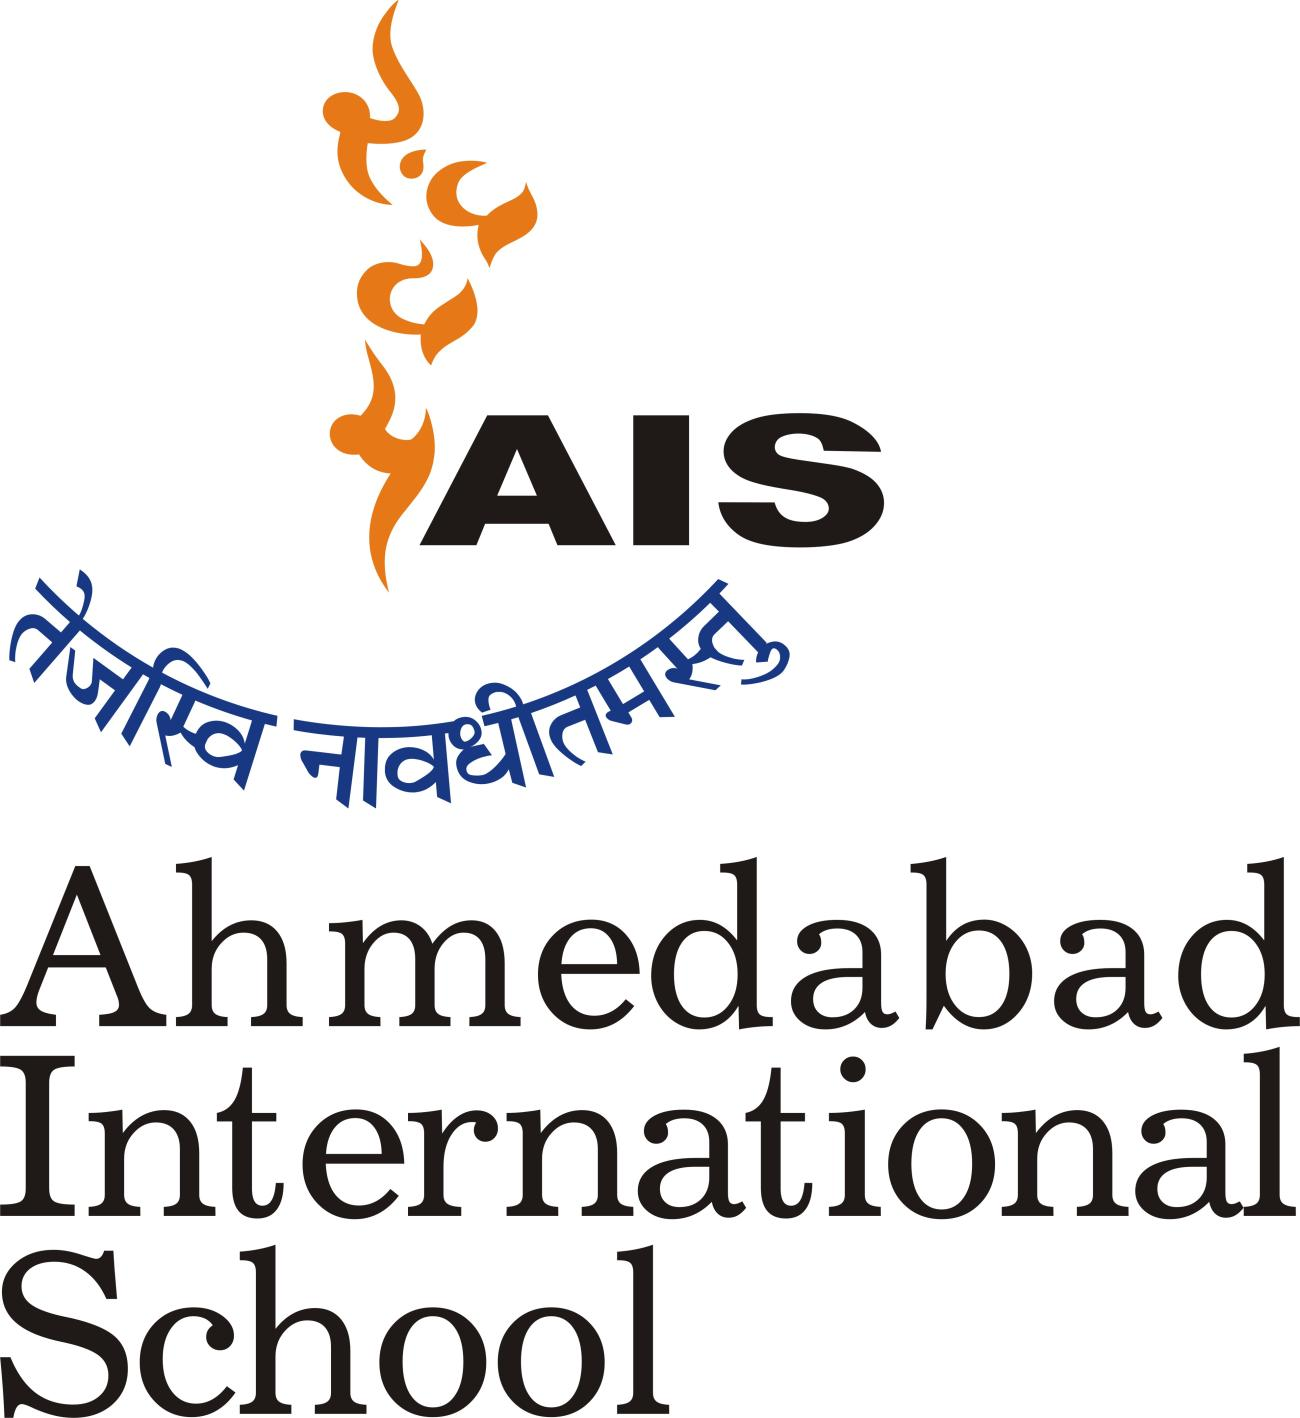 Ahmedabad International School - AIS - Ahmedabad